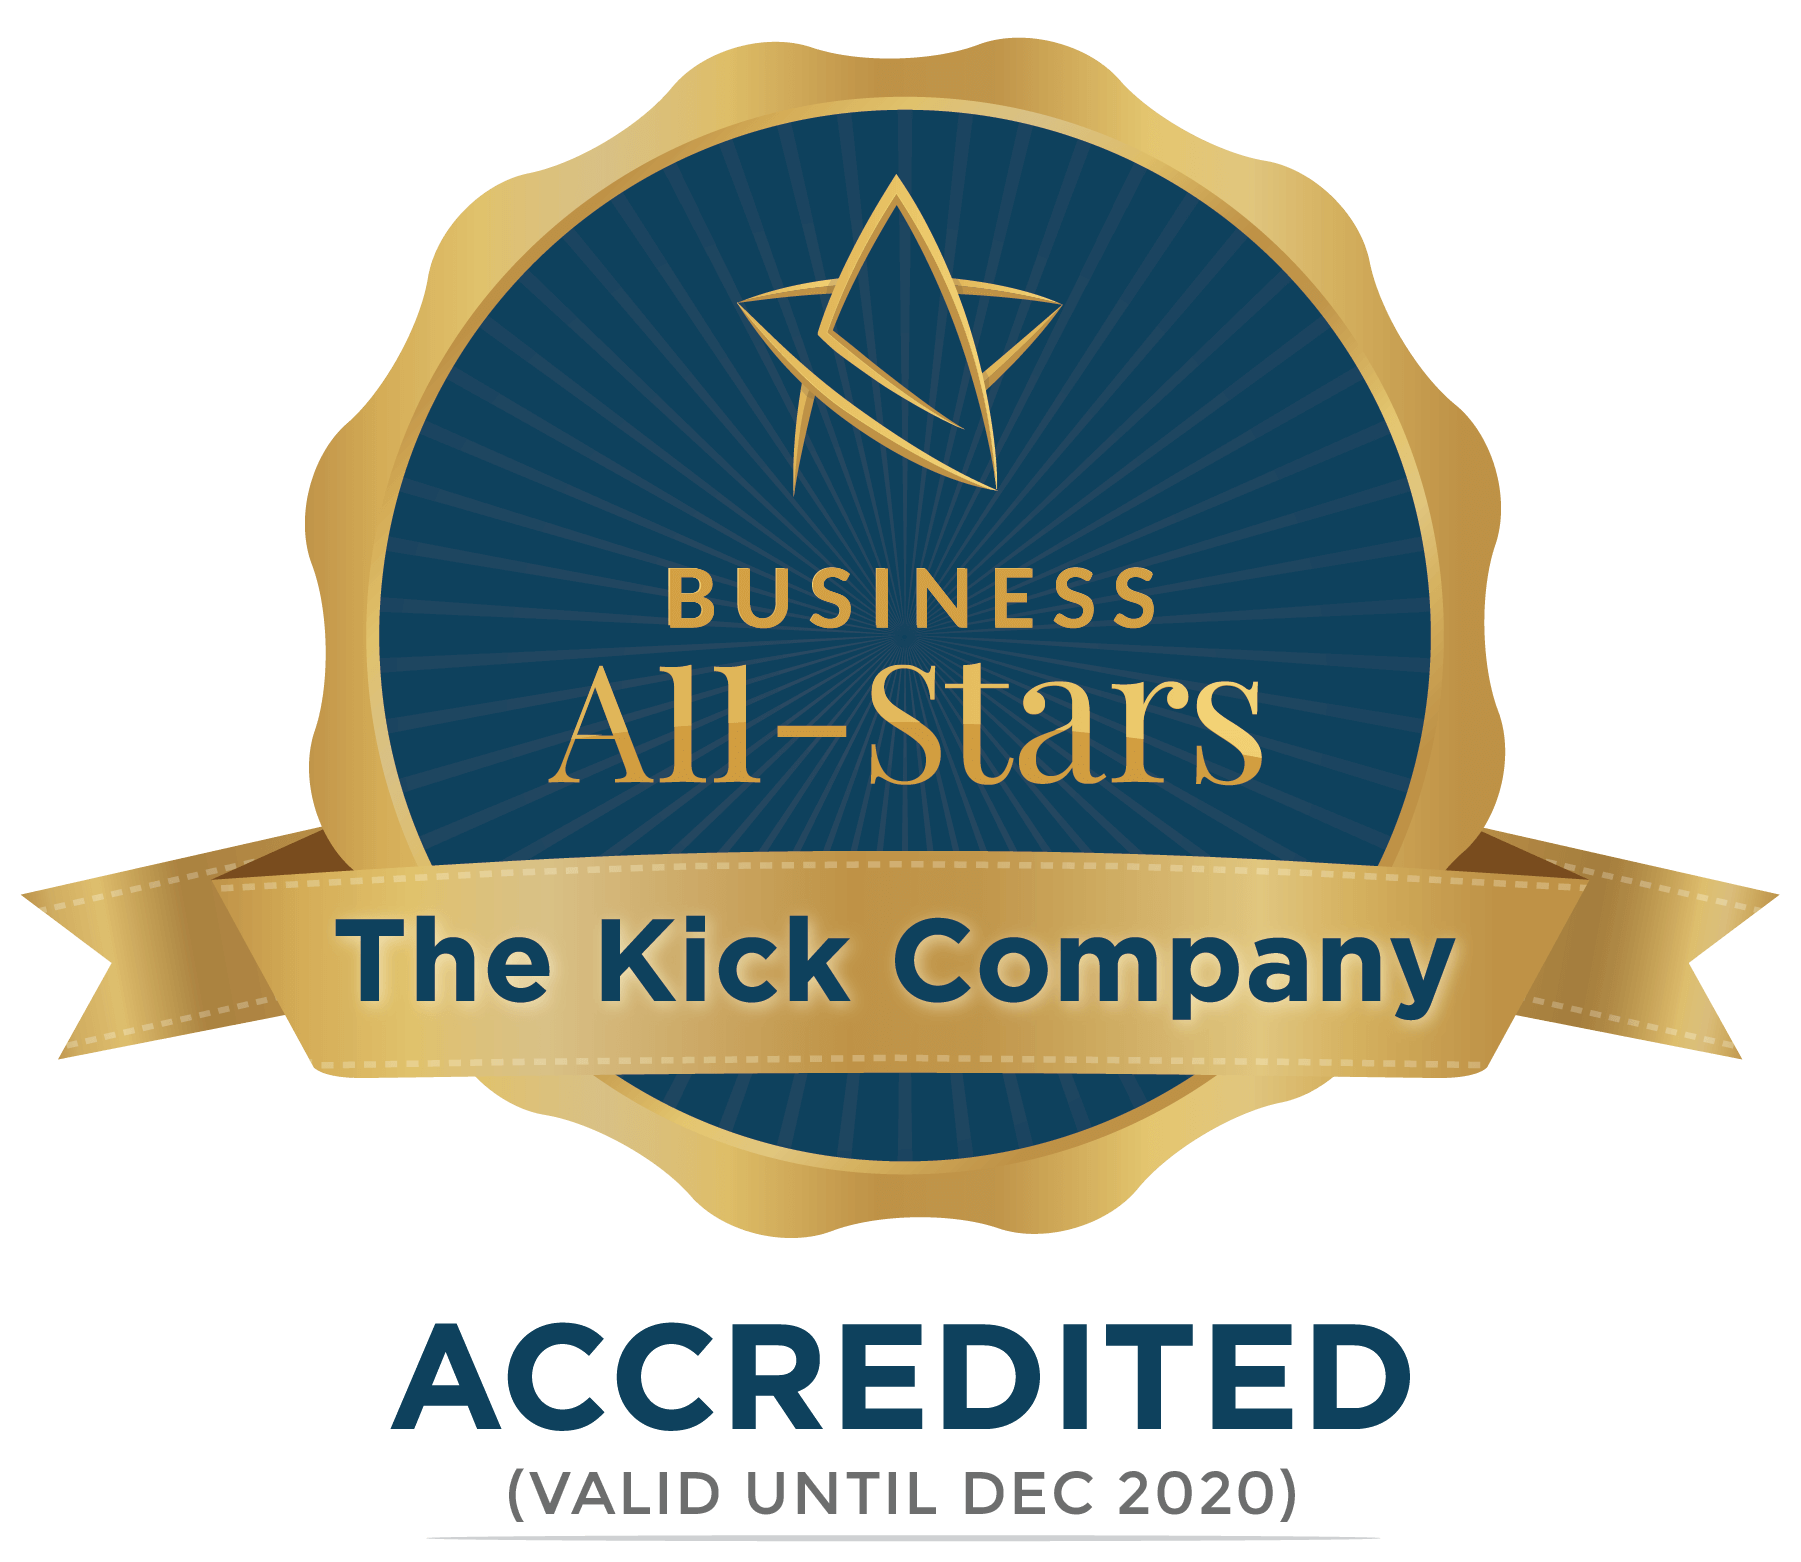 The Kick Company - Business All-Stars Accreditation